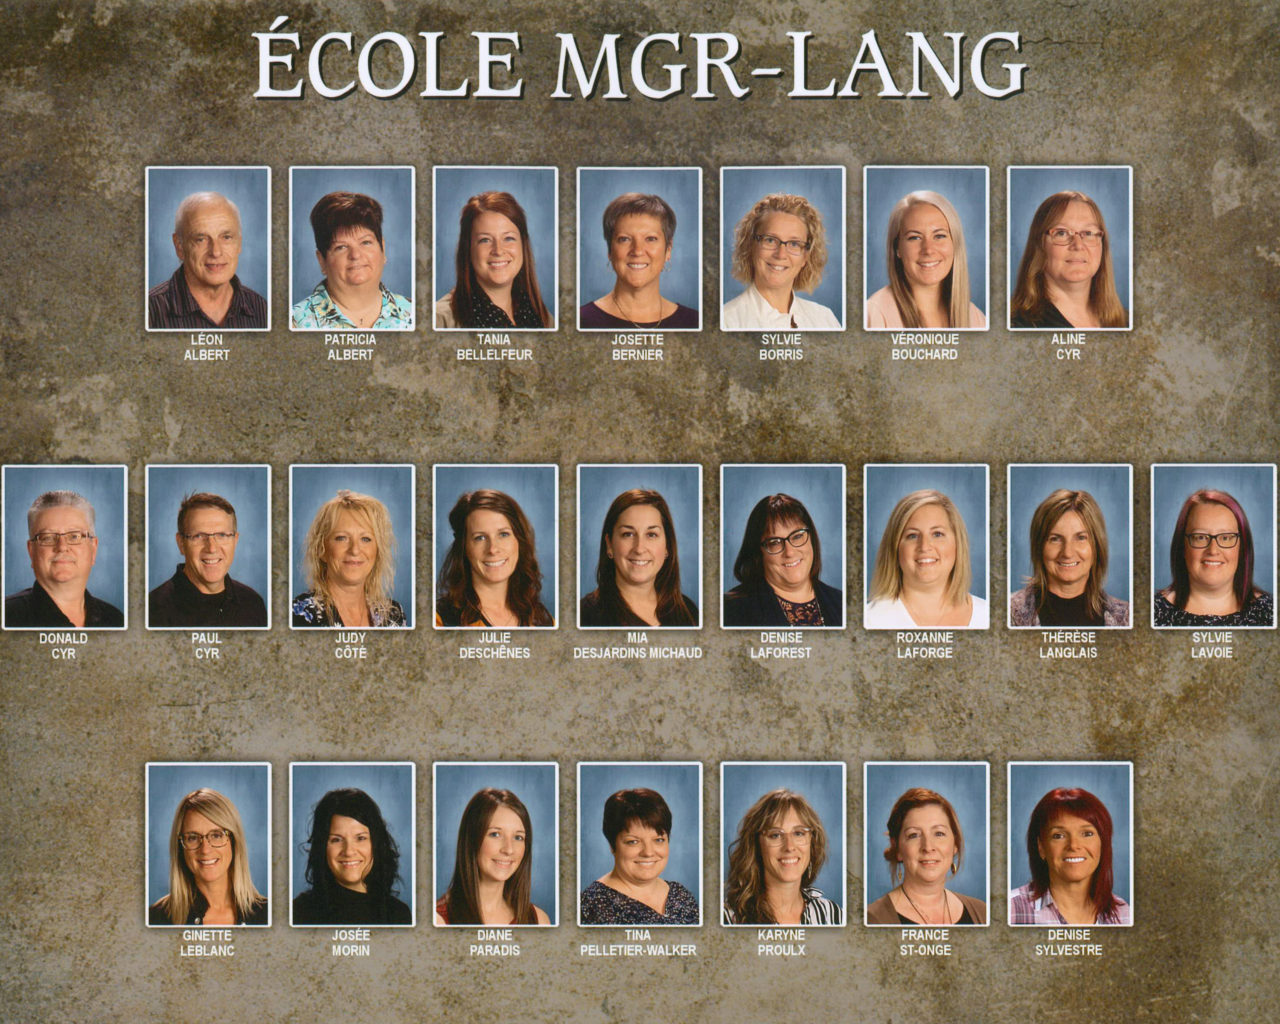 Recognizing that adaptation is an important part of inclusion, the educational team at École Mgr-Lang strives to continually improve its inclusion practices.